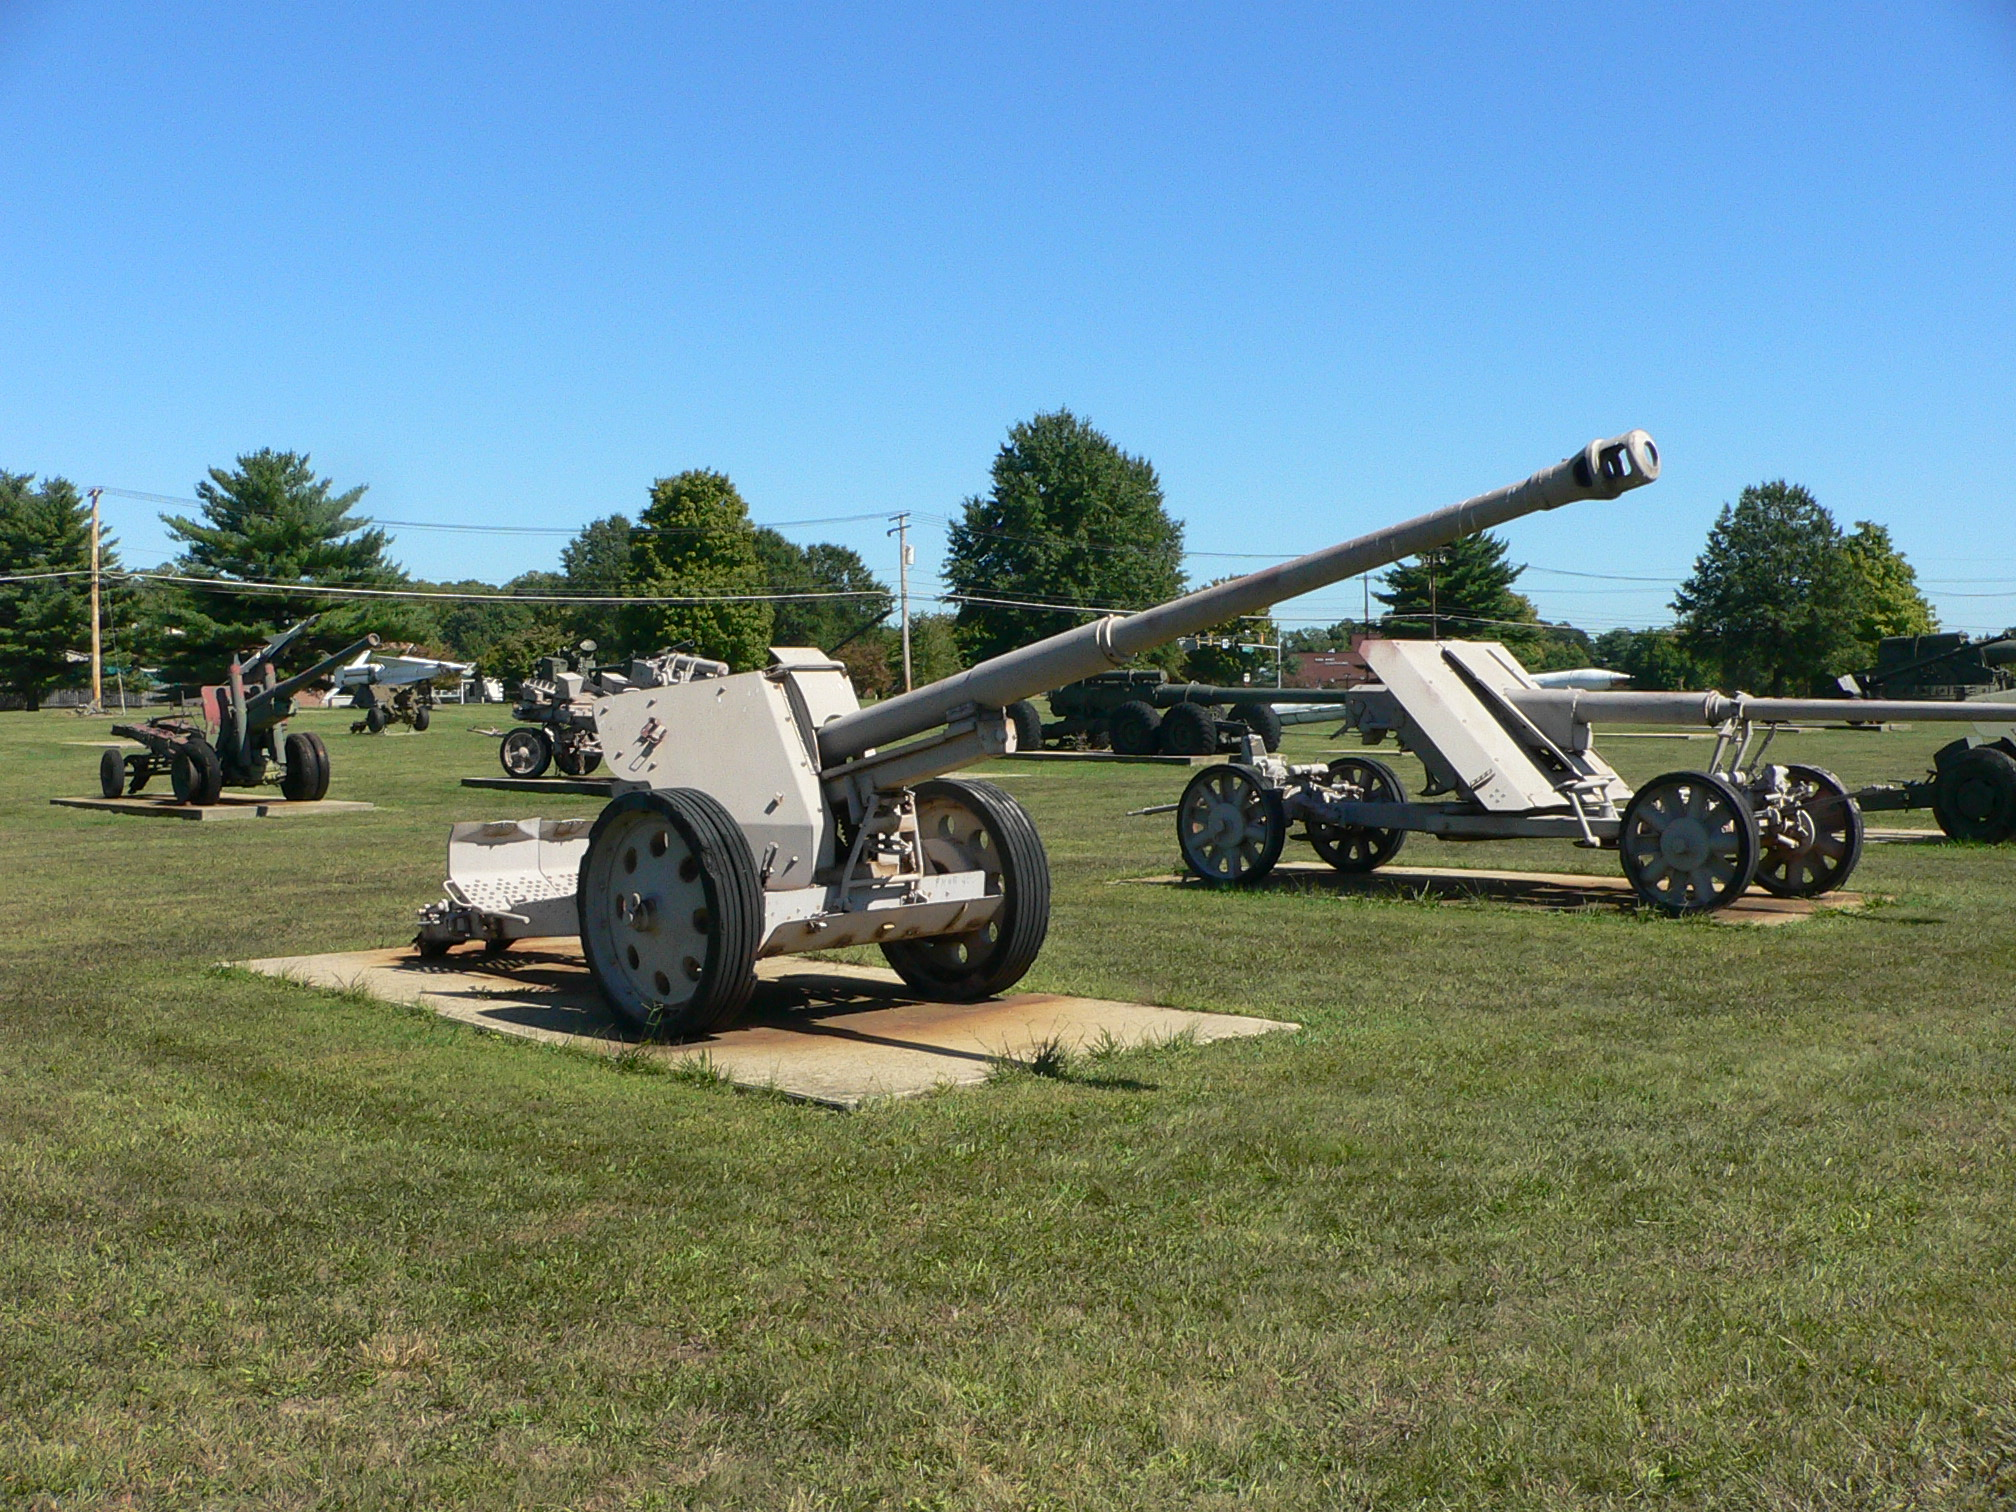 photo of 8.8cm Pak 43/41 L/71 from Wikipedia